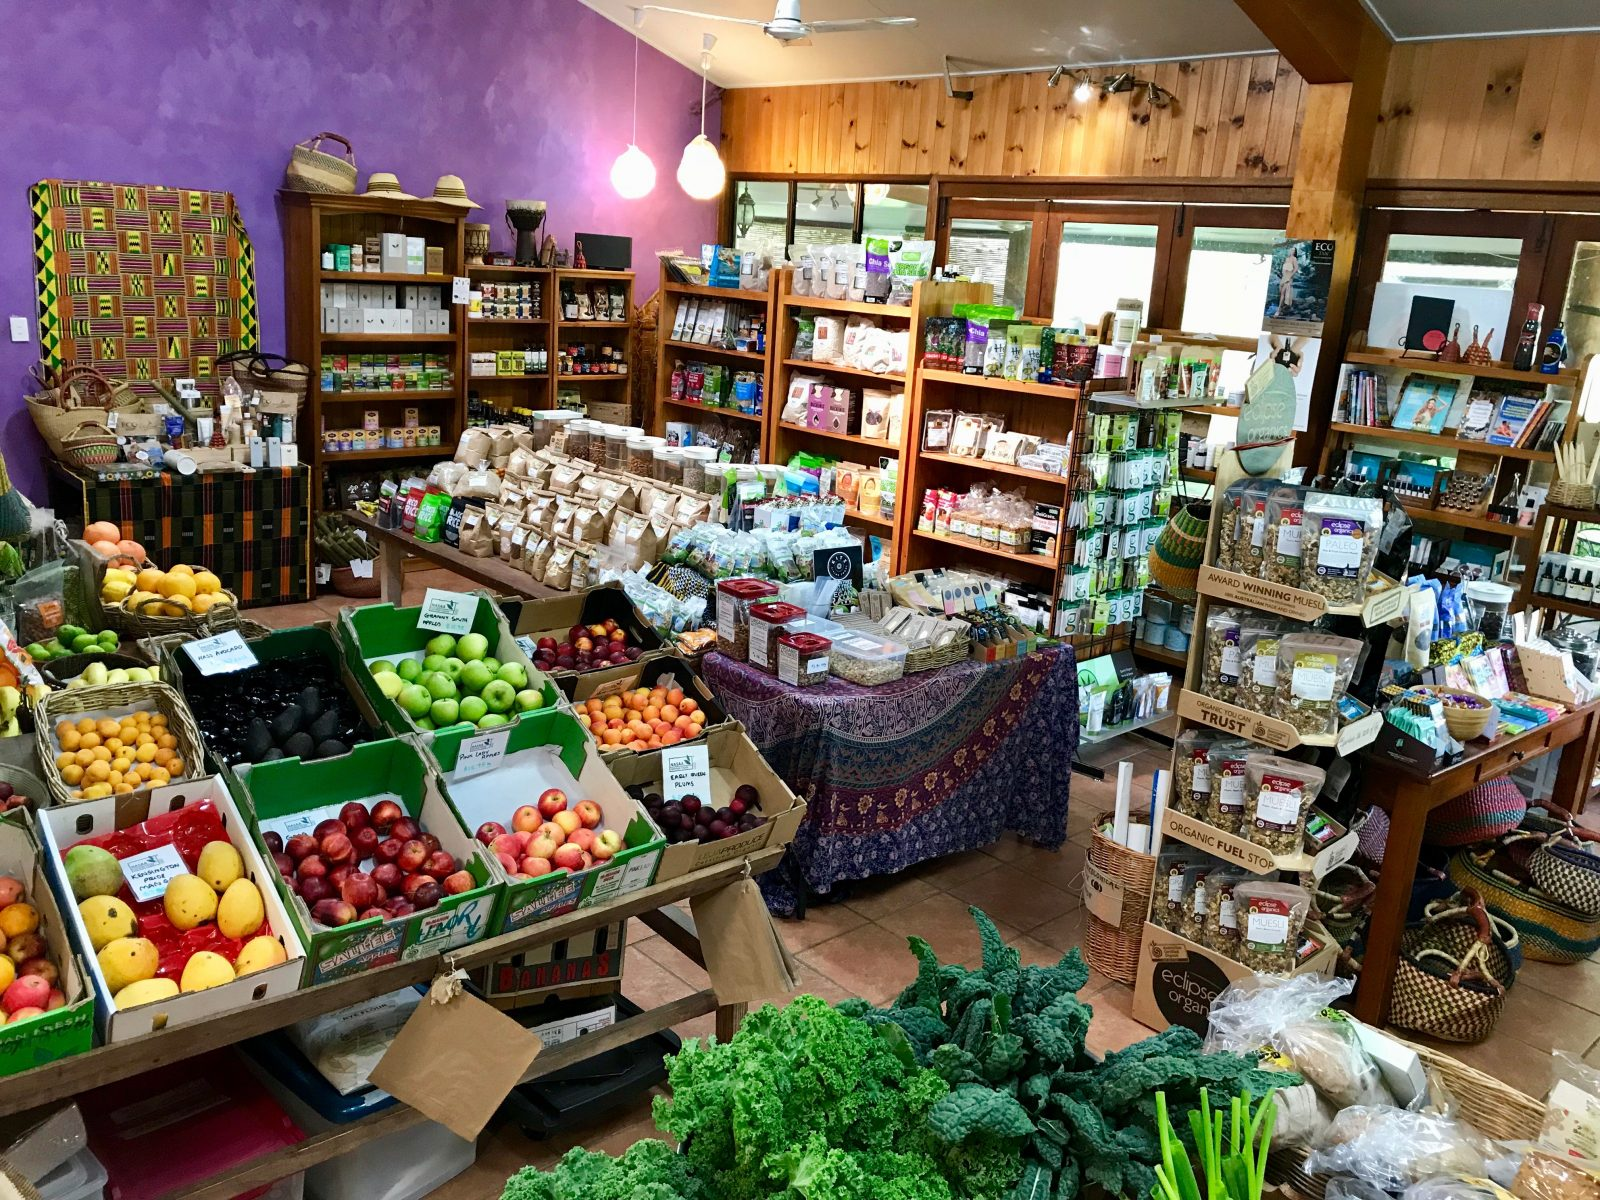 Browse thousands of organic and eco friendly products in their certified organic store